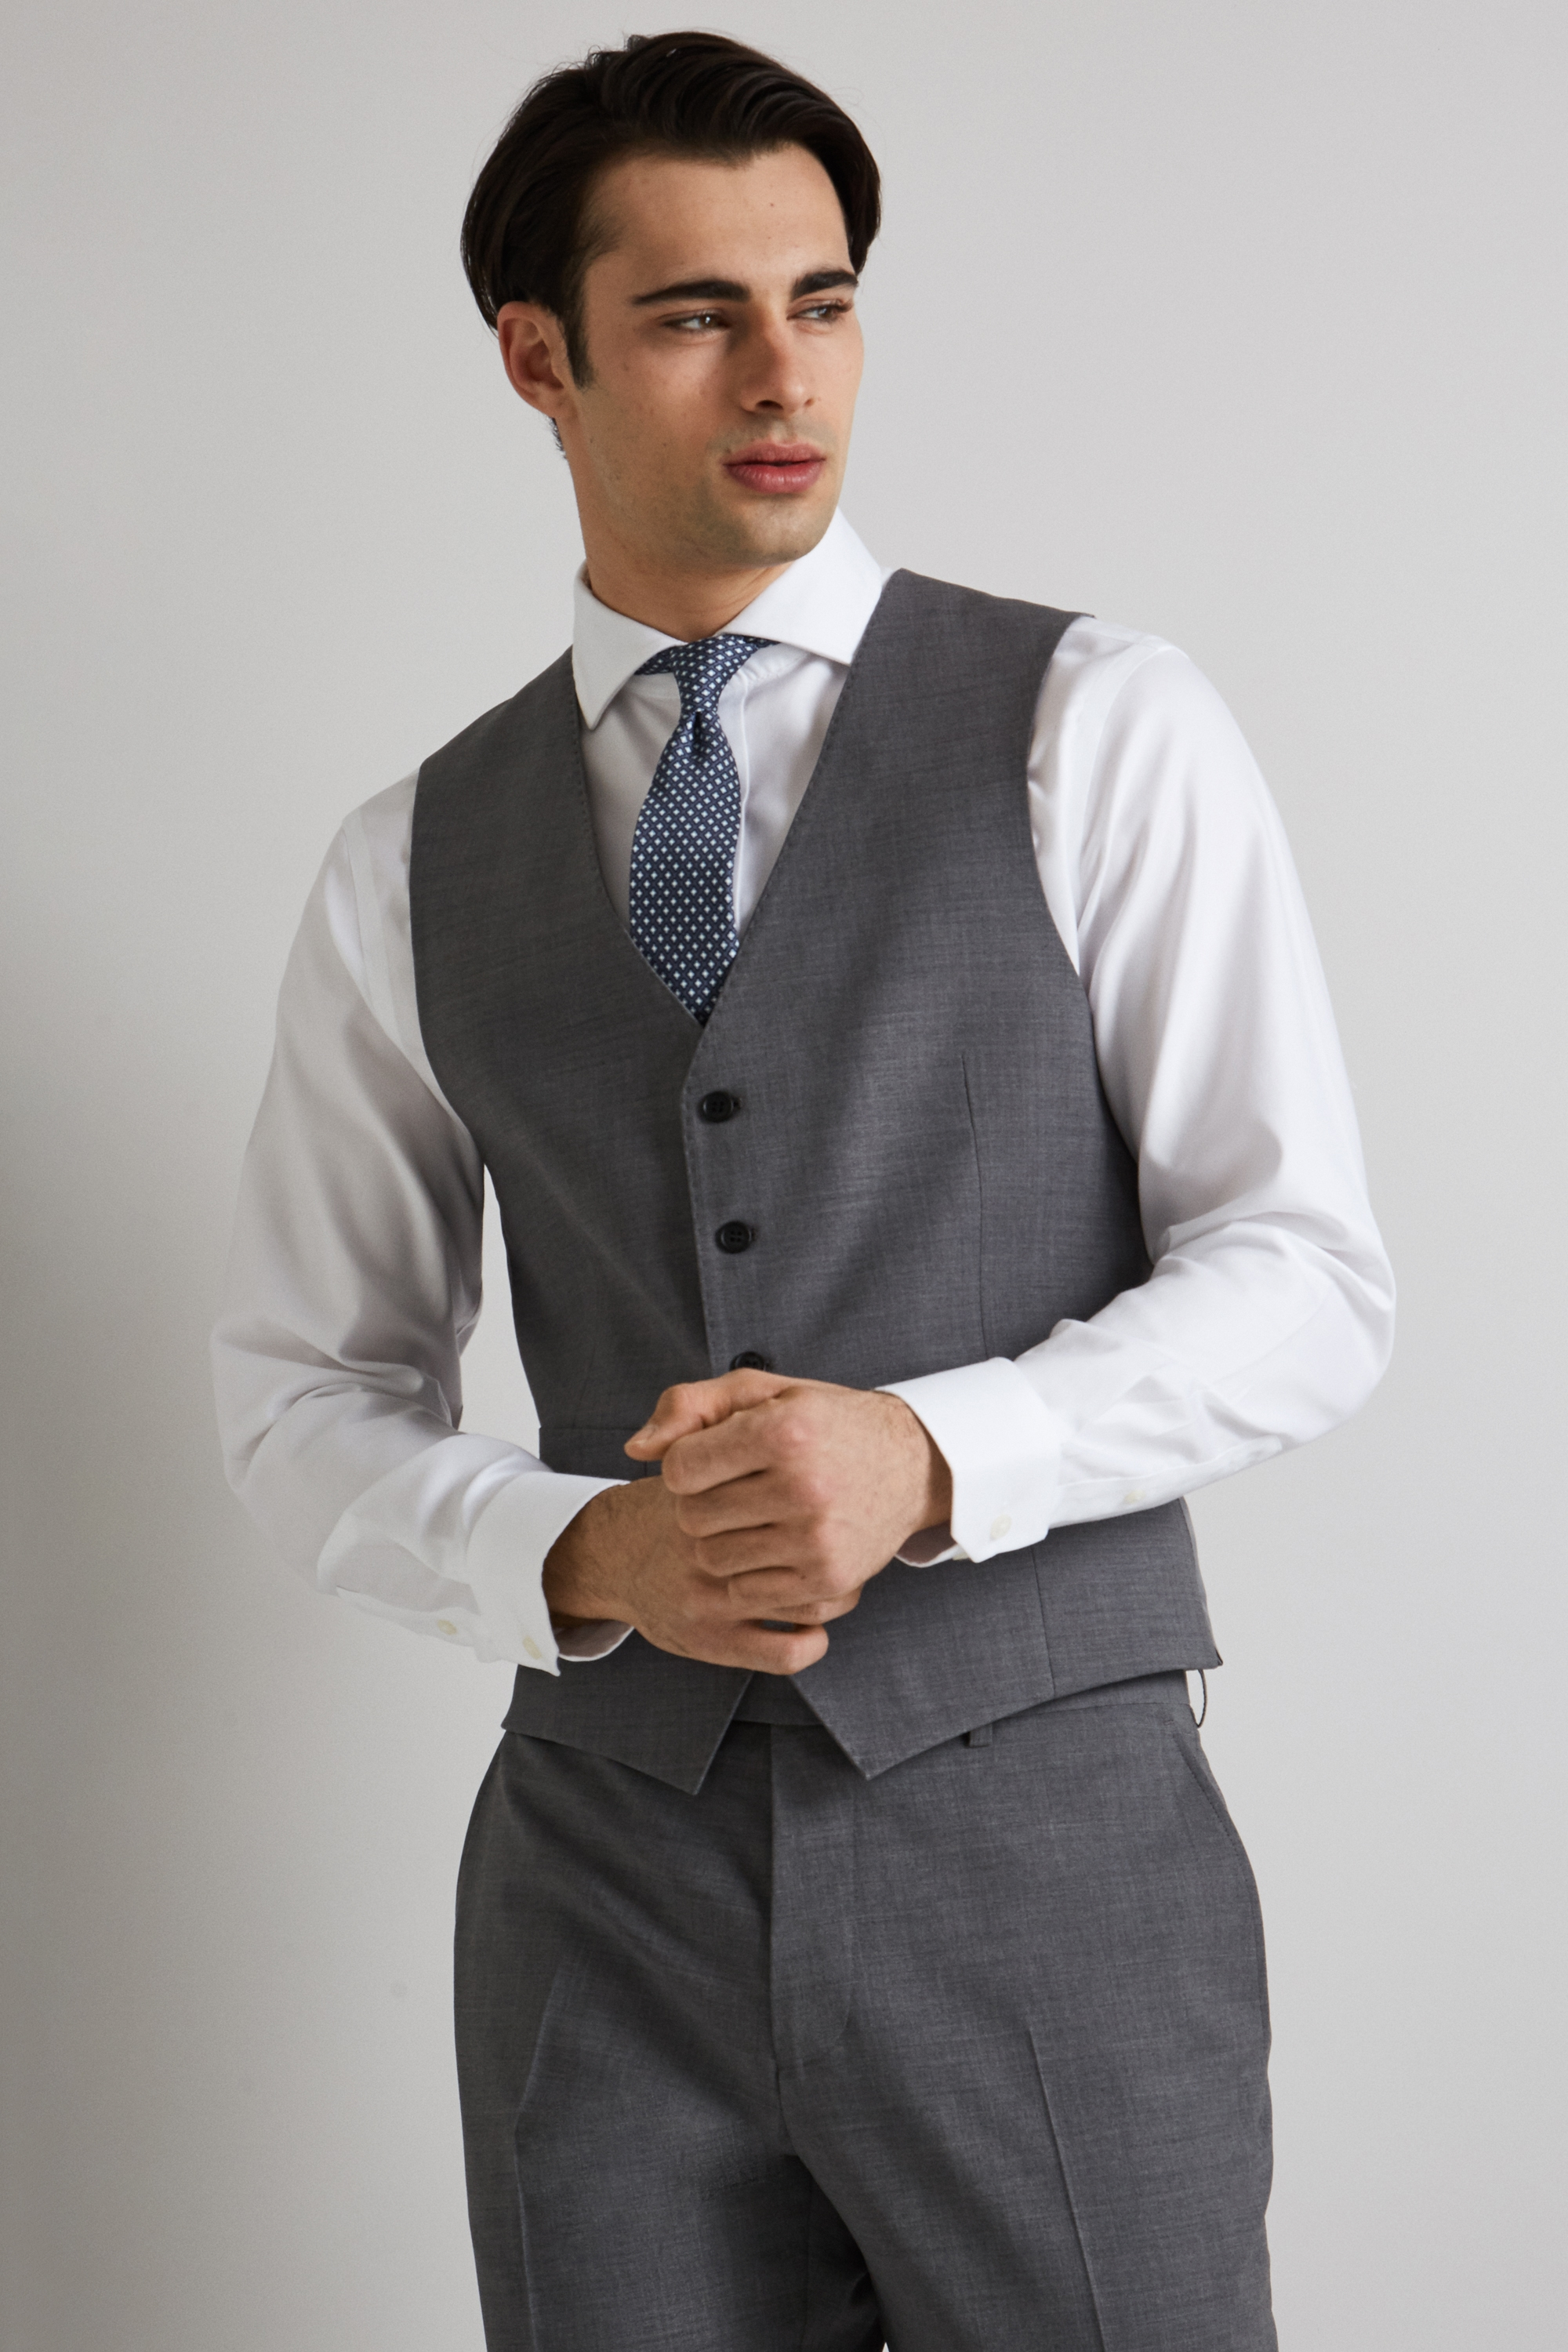 Ideal for special occasions, give your formal look the perfect finishing touch with a sophisticated waistcoat. Our range includes styles in black, grey or blue, so you can find the perfect match for your favourite two piece suits.